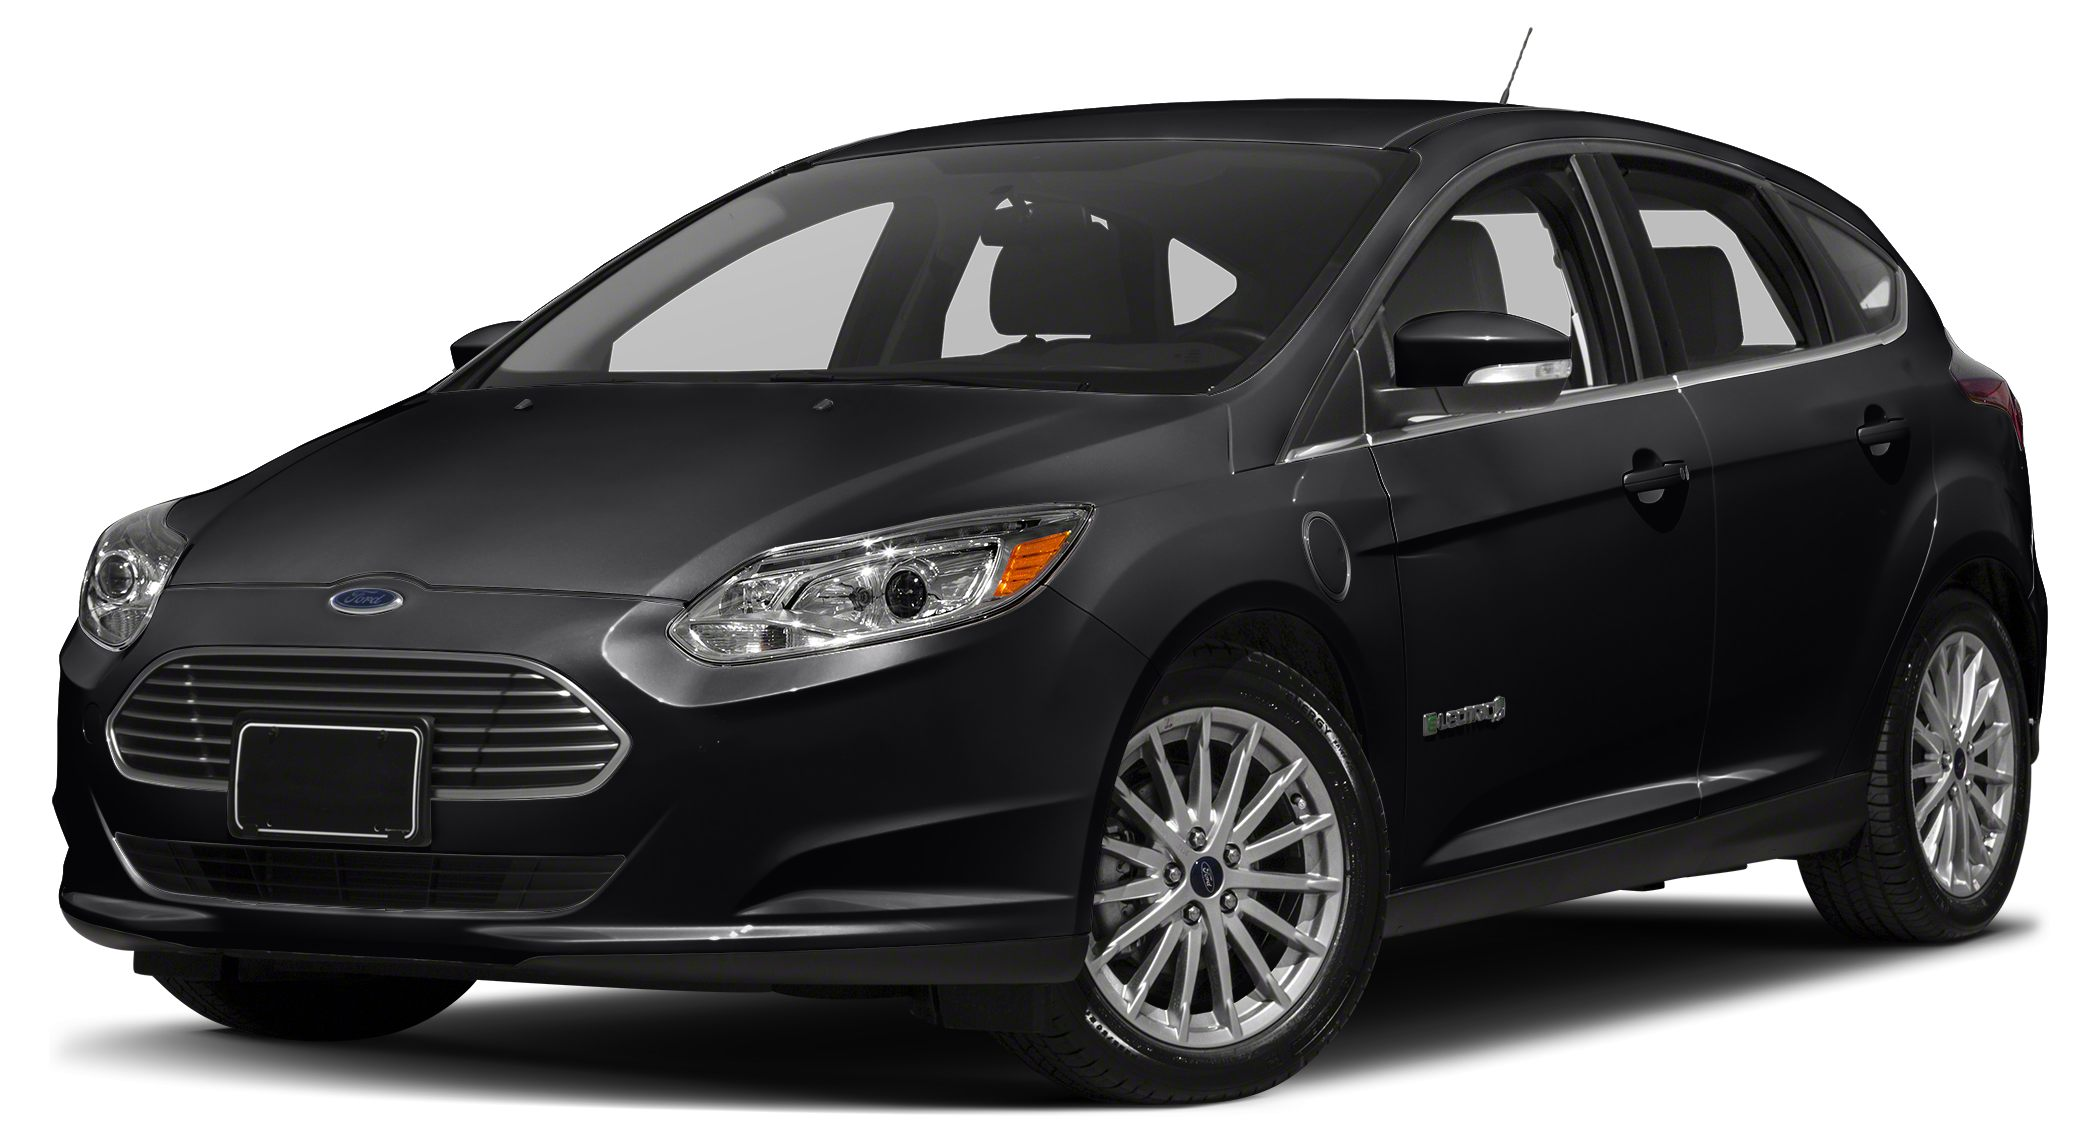 2016 Ford Focus Electric Base Miles 50Color Shadow Black Stock C58641 VIN 1FADP3R47GL238835